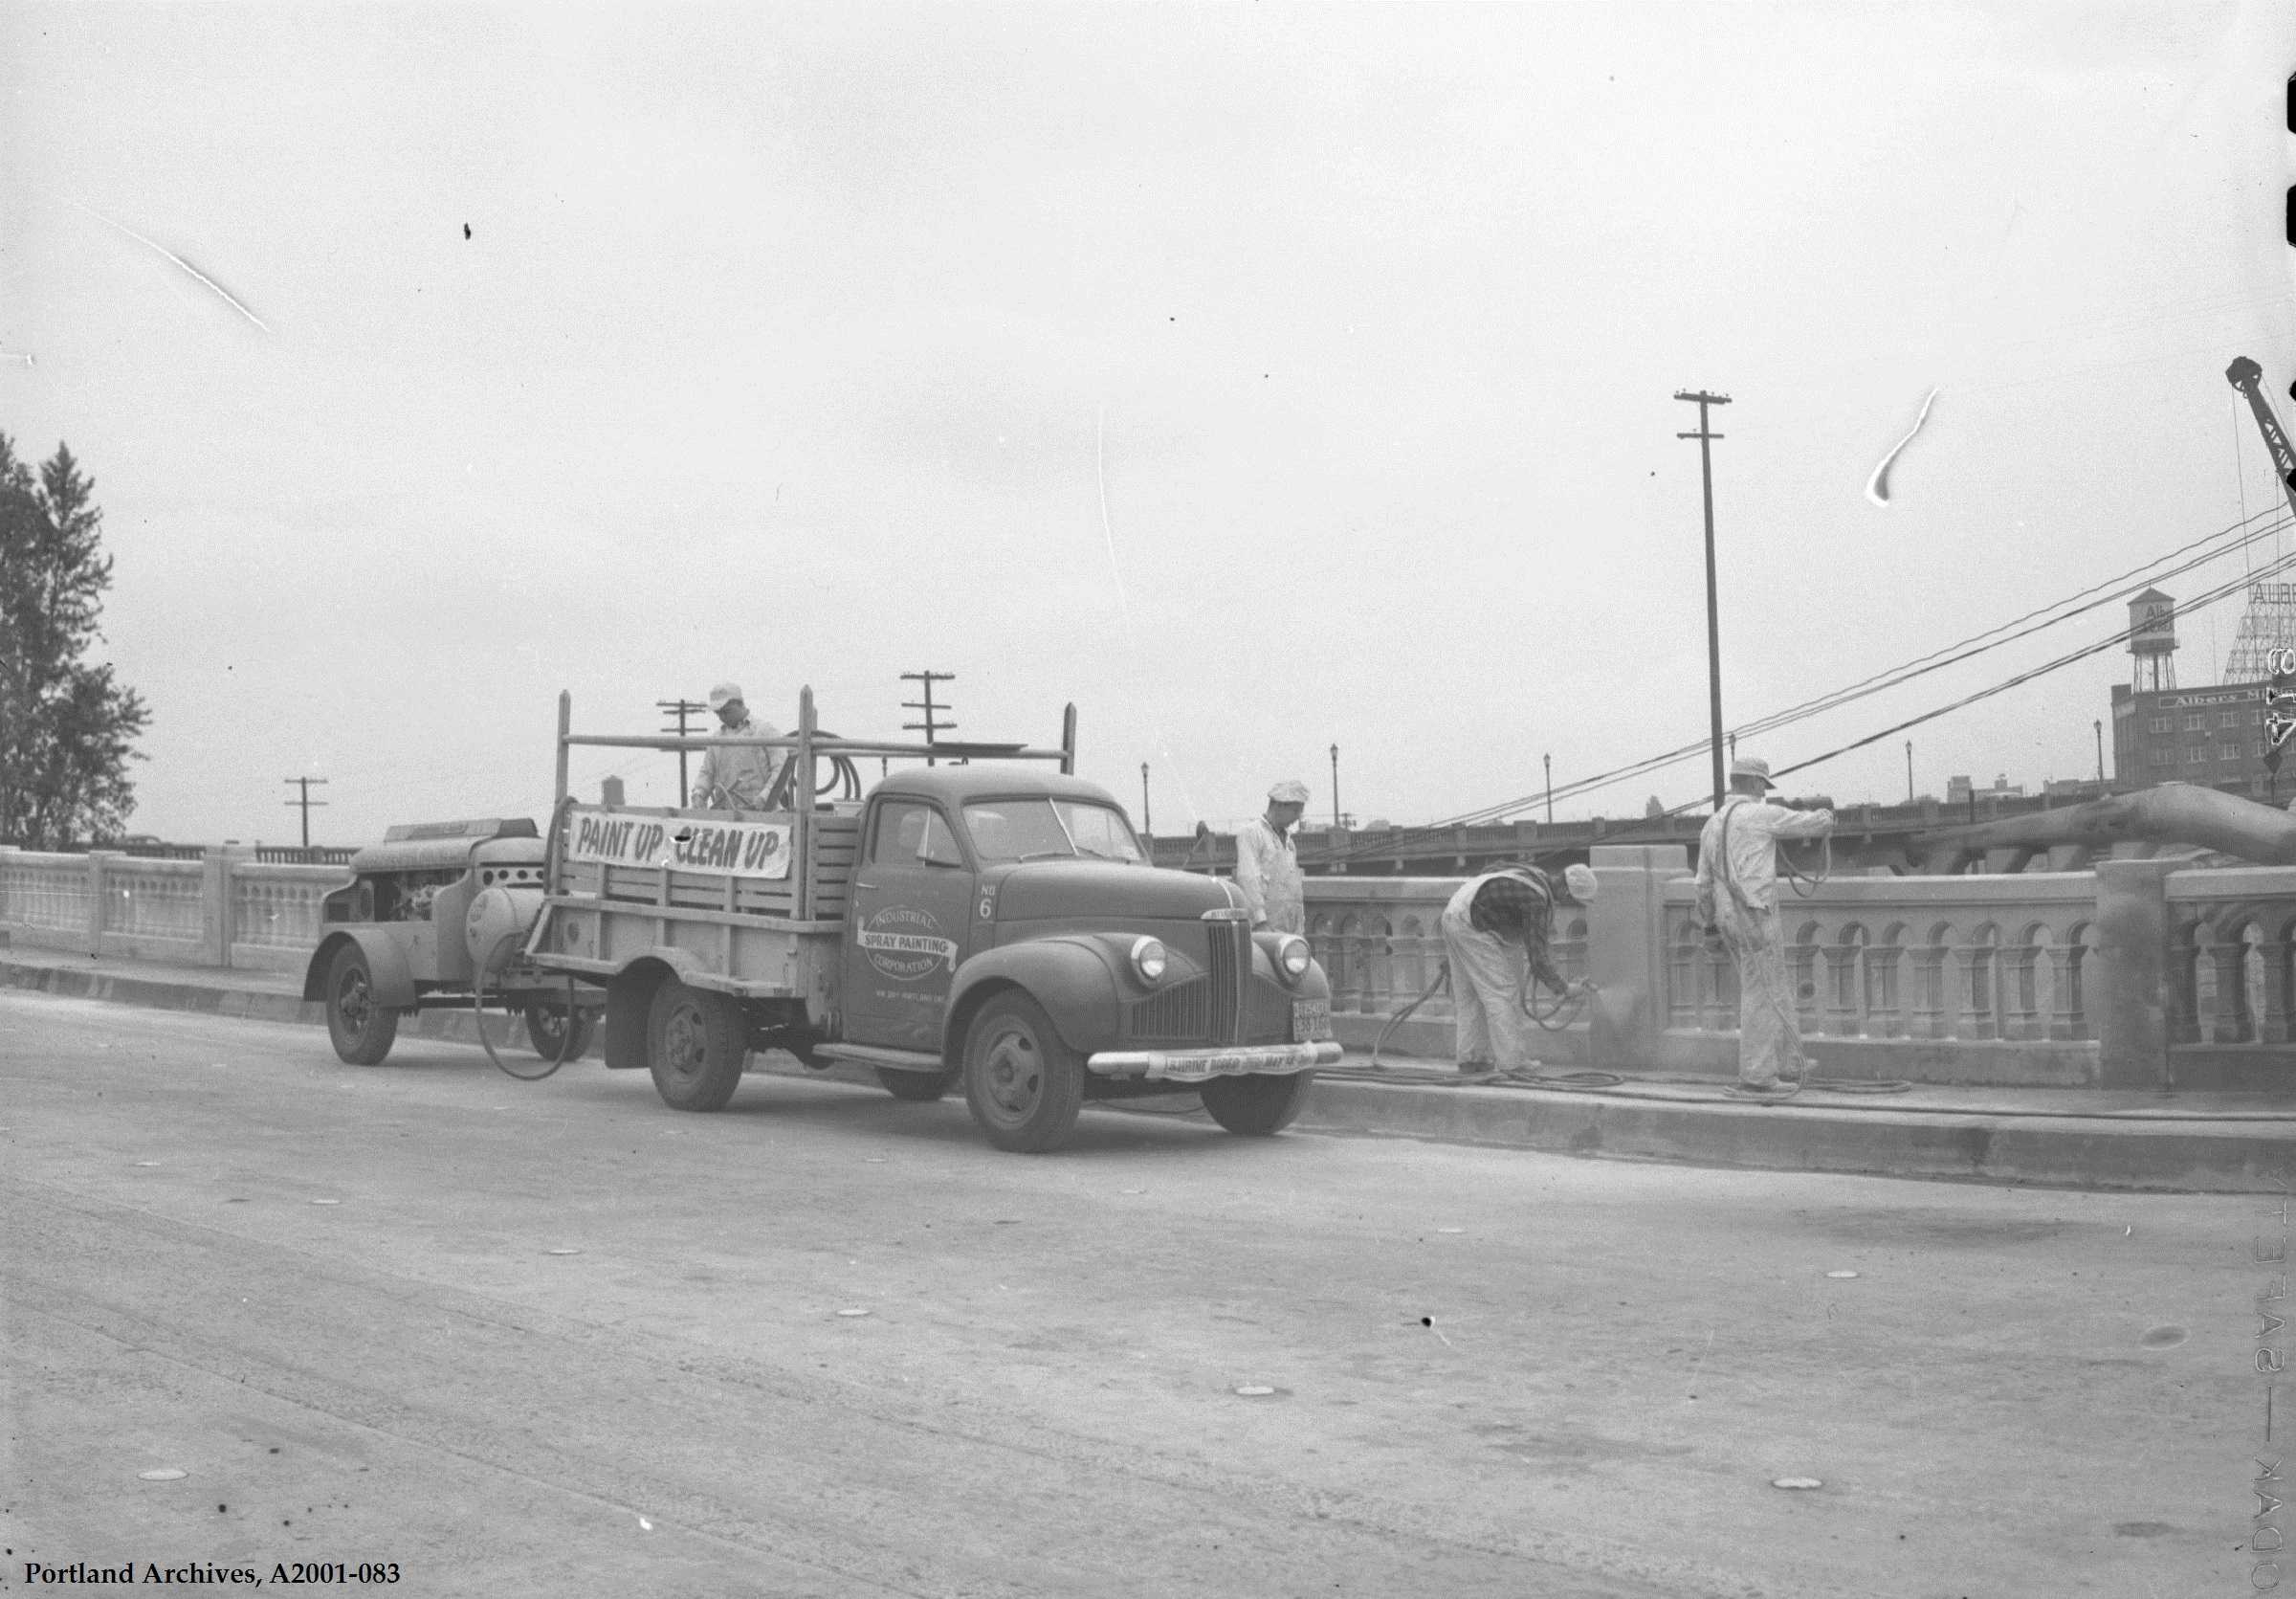 City of Portland Archives, Oregon: 10th Avenue ramp to Lovejoy Viaduct_A2001-083, 1950